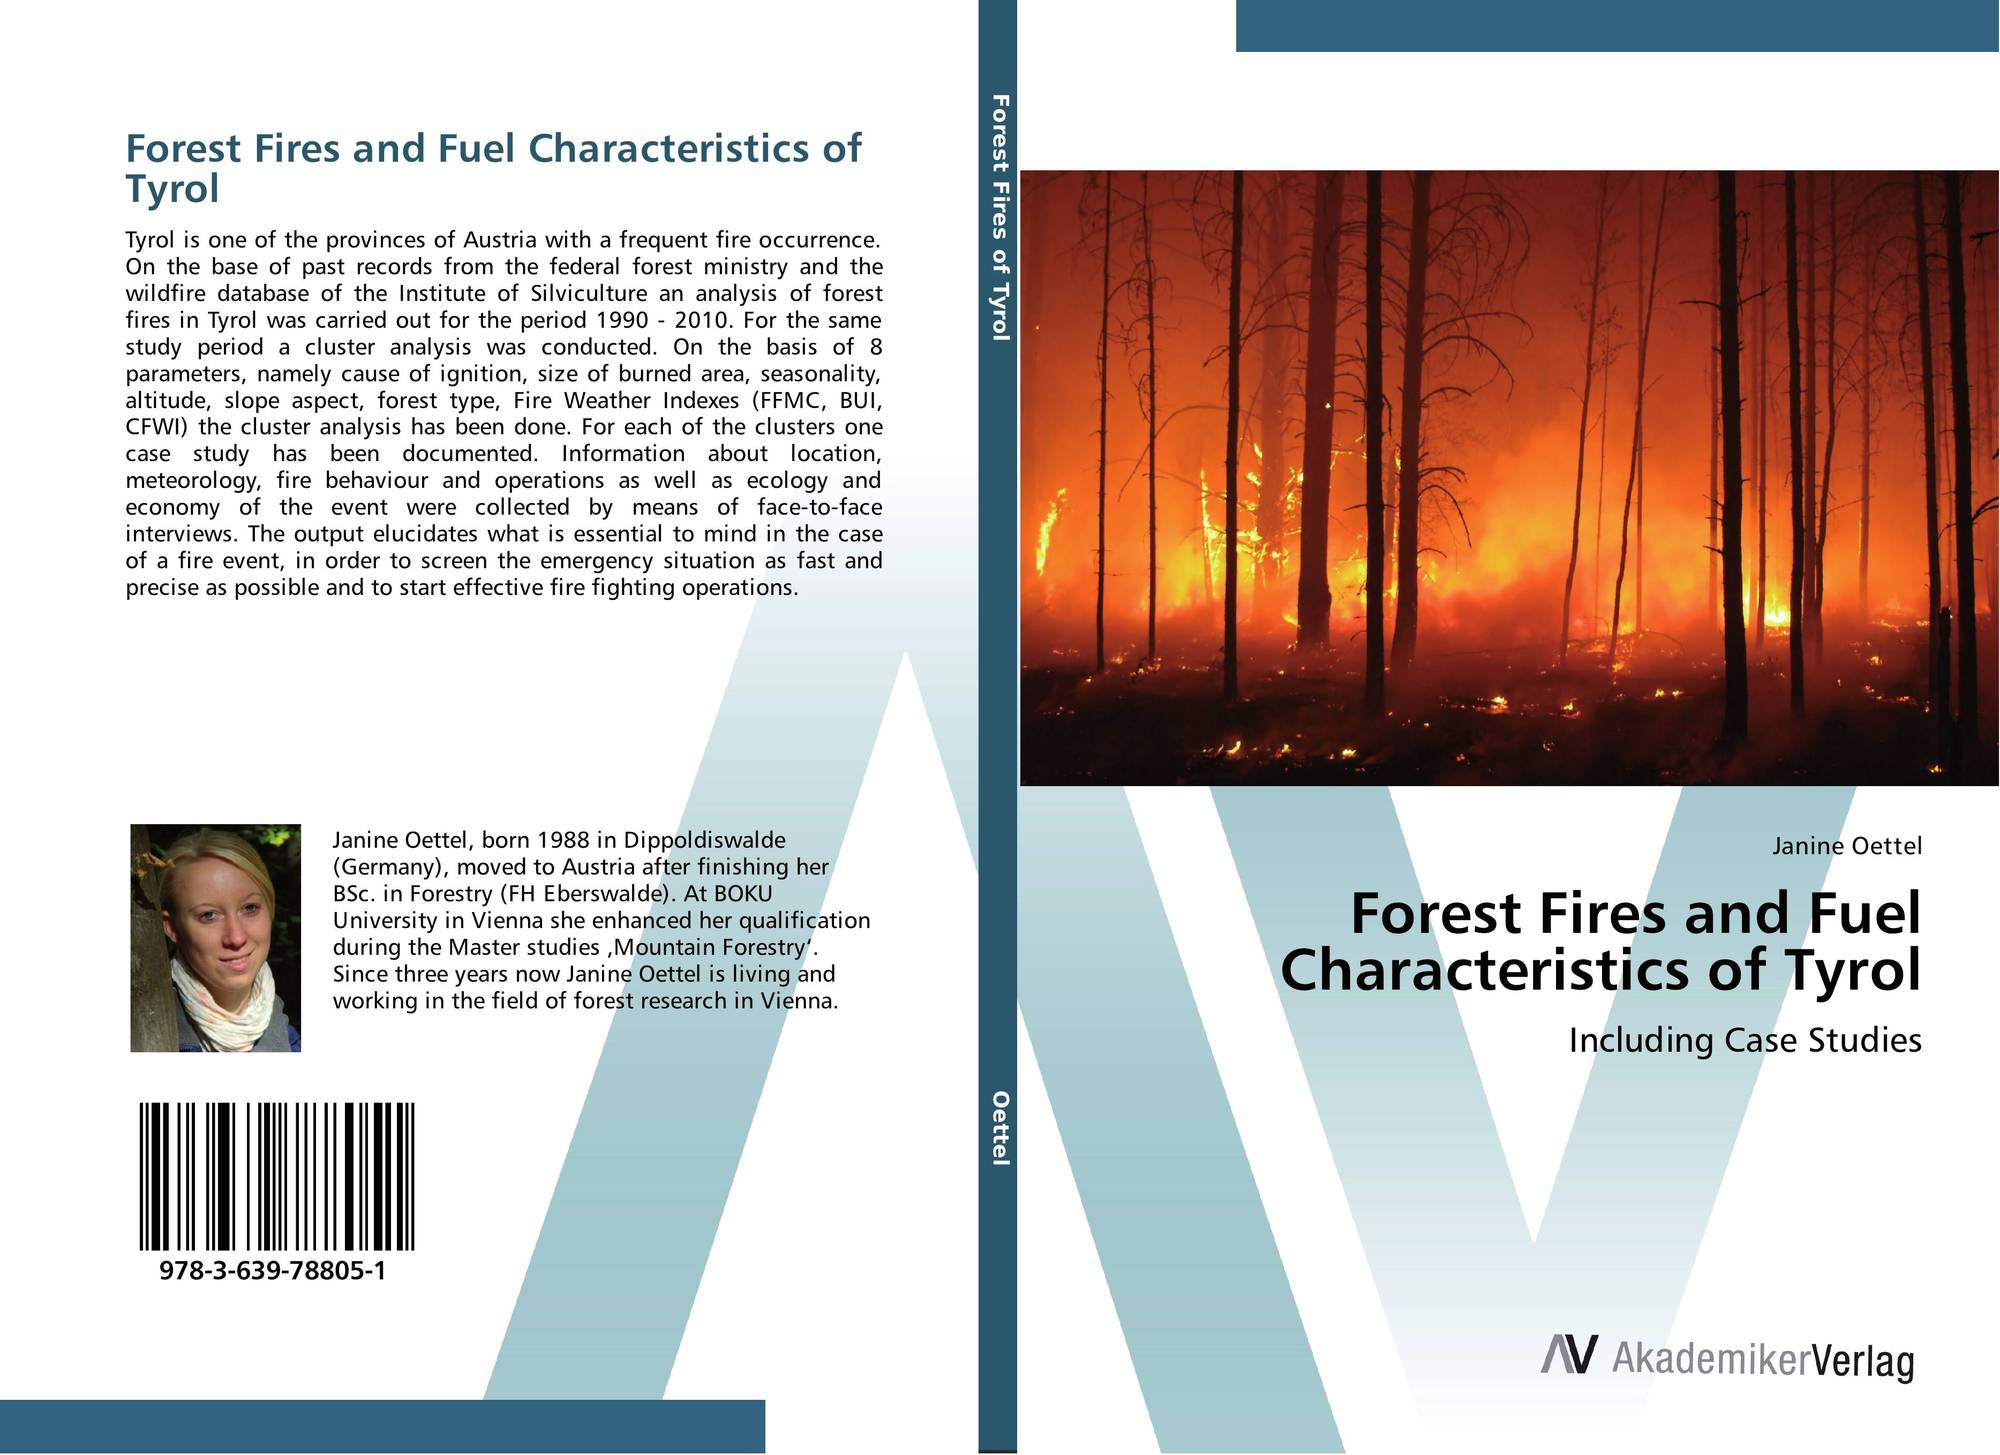 an analysis of the case of a forest fire Forest fire analysis and classification based on a serbian case study forest fire analysis and classification based on a serbian case study doi: .